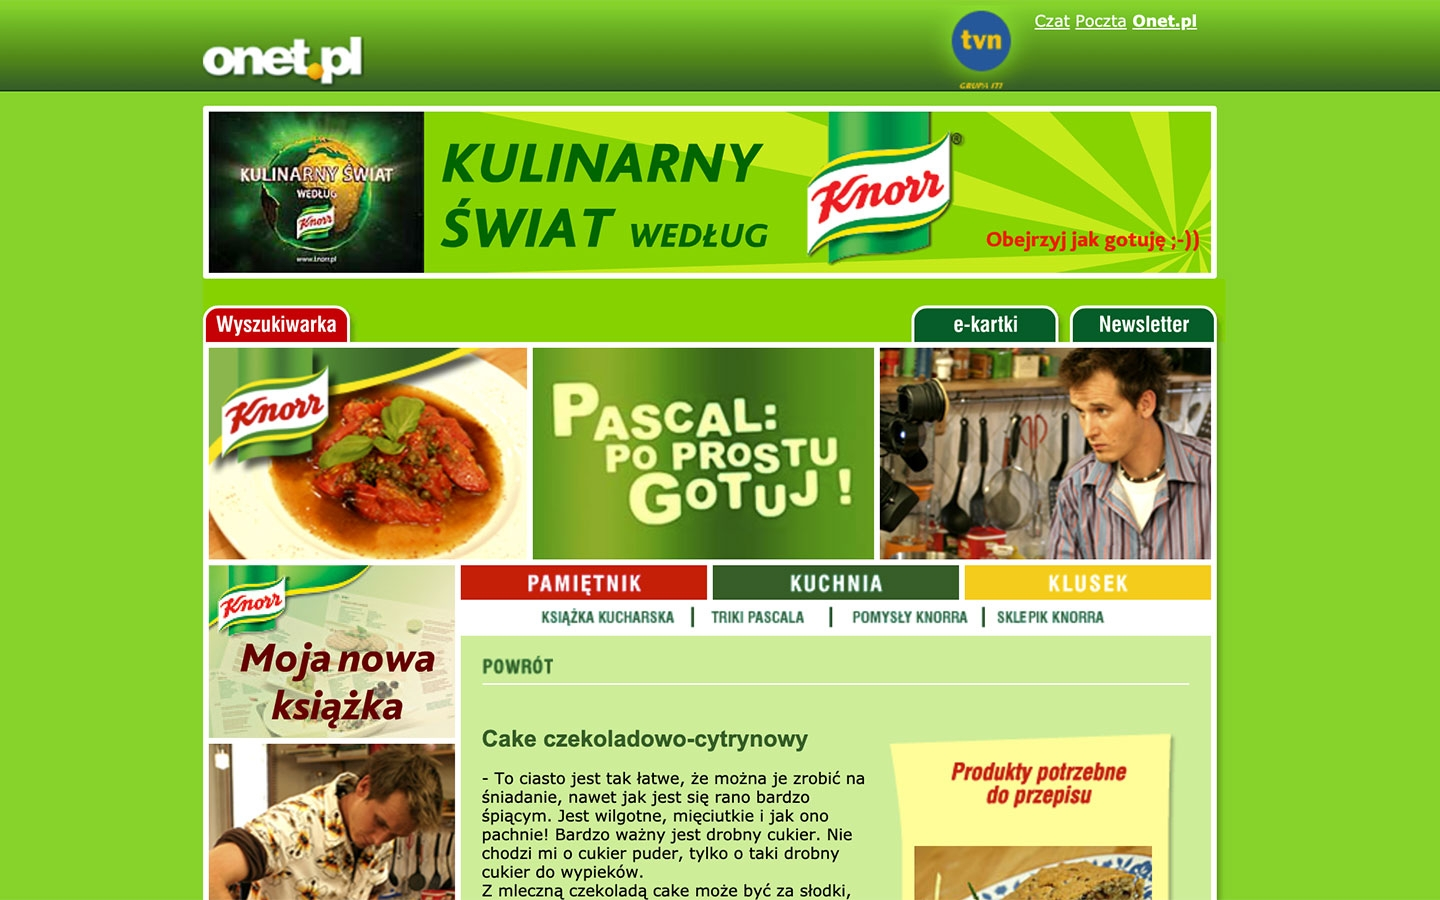 Pascal: Po Prostu Gotuj! | poprostugotuj.onet.pl | 2004 (Screen Only 04) © echonet communication